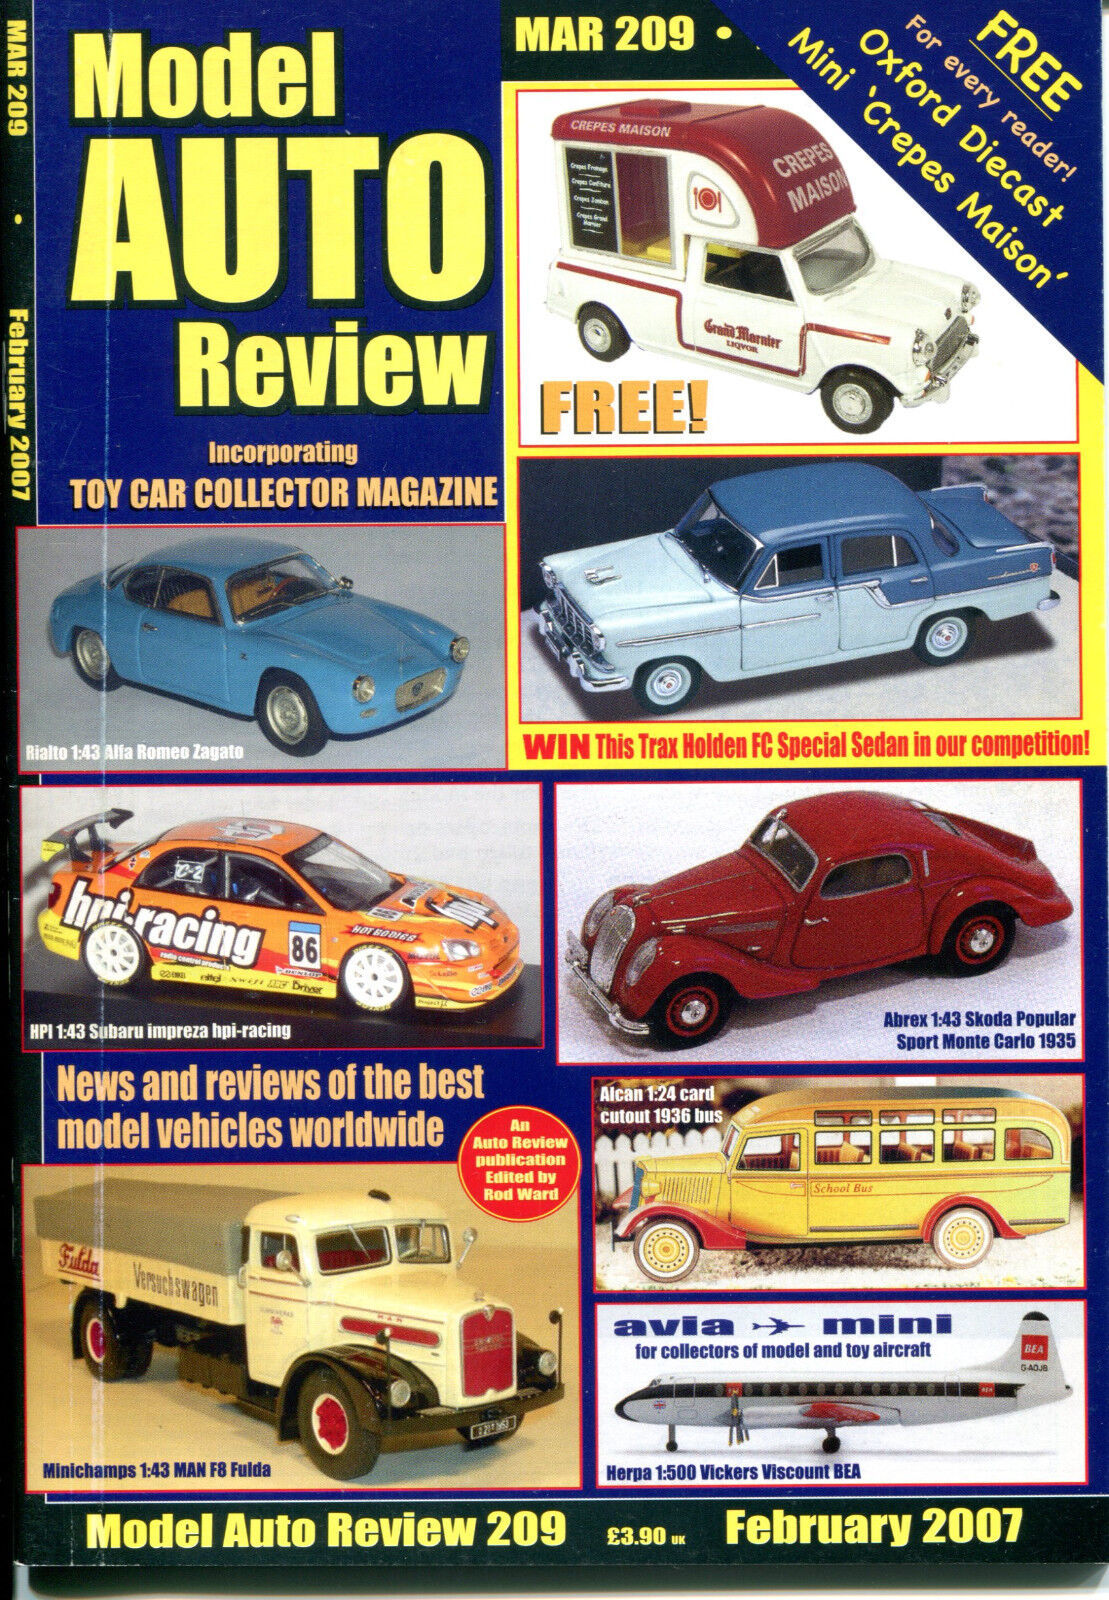 MODEL AUTO REVIEW  MAR  Magazine  2007  Special Bundle Offer - 10 NEW ISSUES